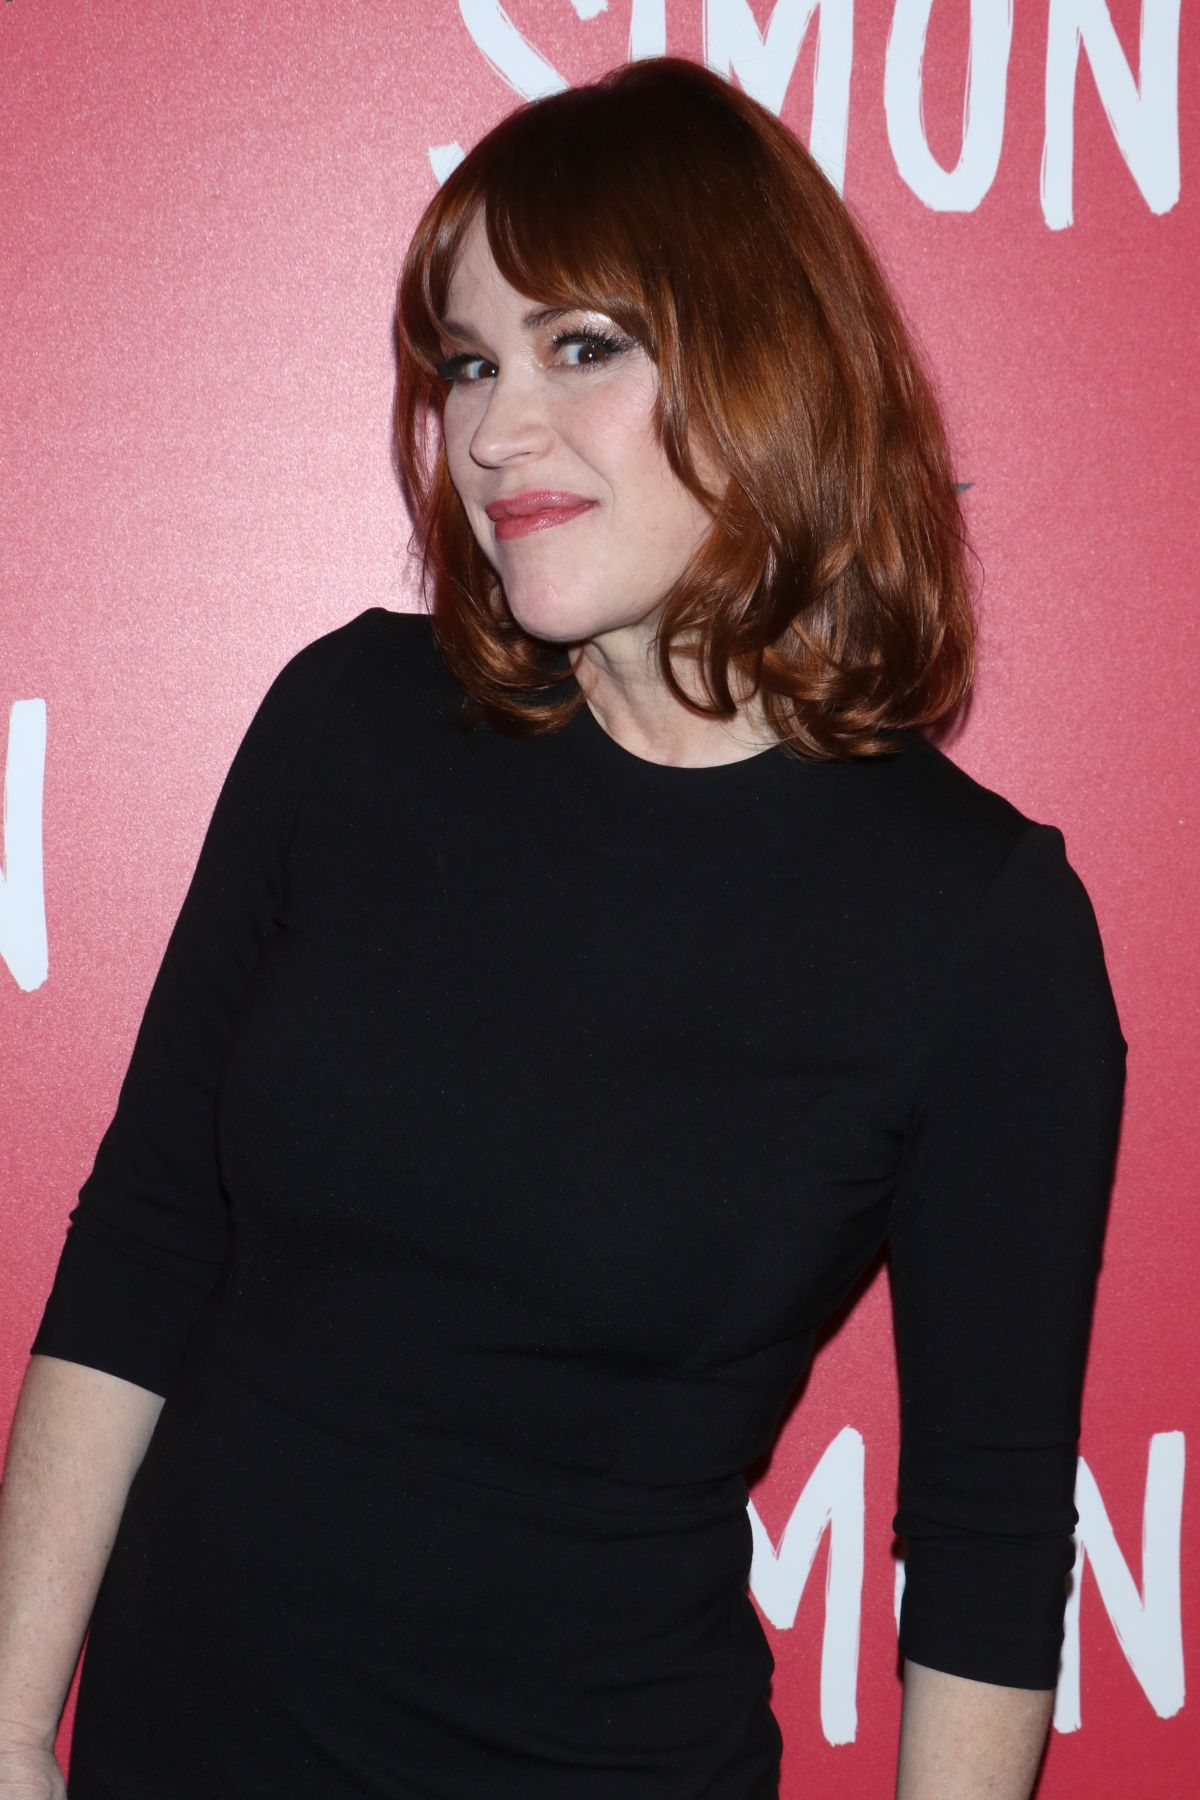 Molly Ringwald At Love Simon Premiere In New York 03 08